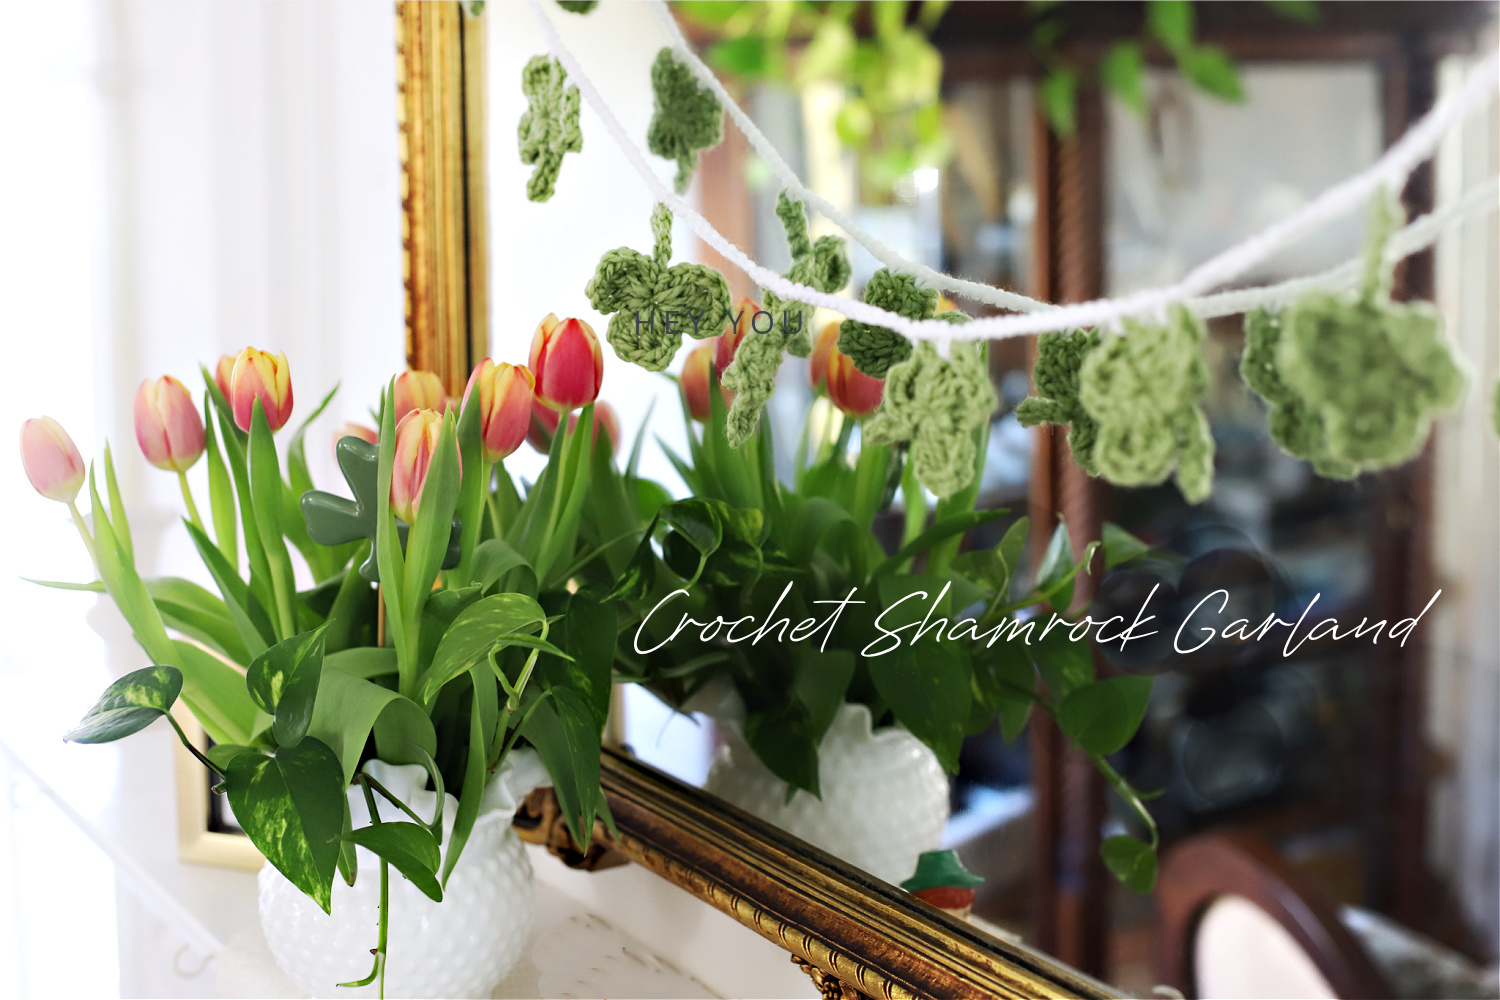 Crochet shamrock garland for S Patrick's Day swaged over mantle mirror